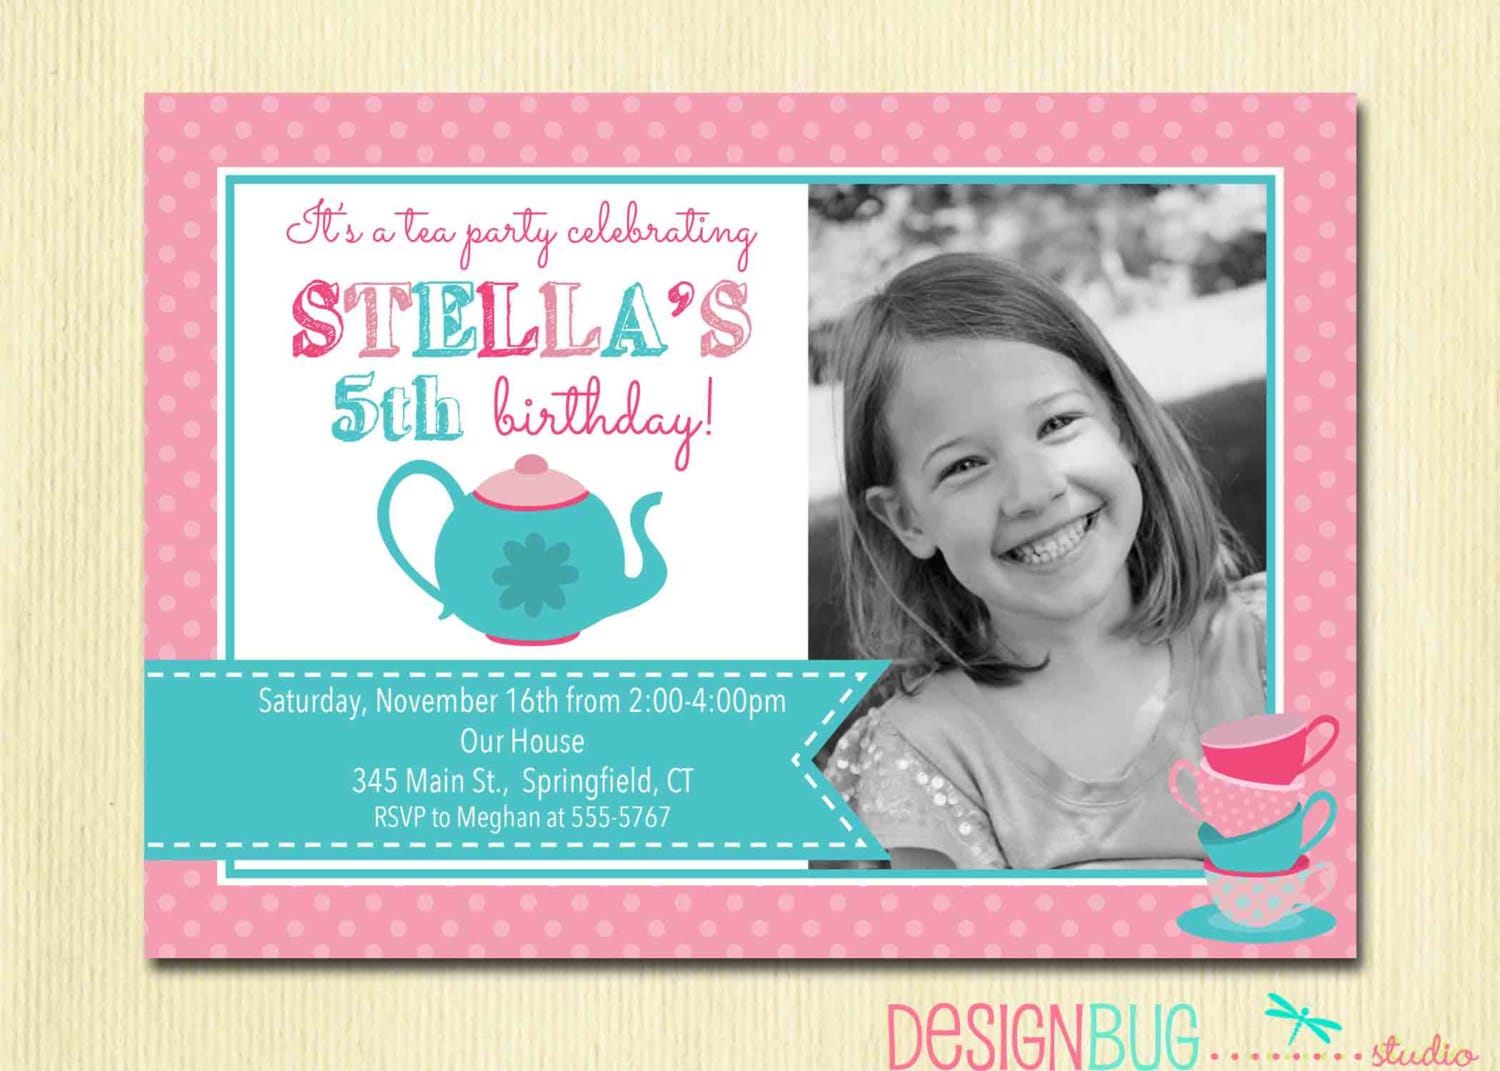 4 year old birthday party invitations doritrcatodos 4 year old birthday party invitations filmwisefo